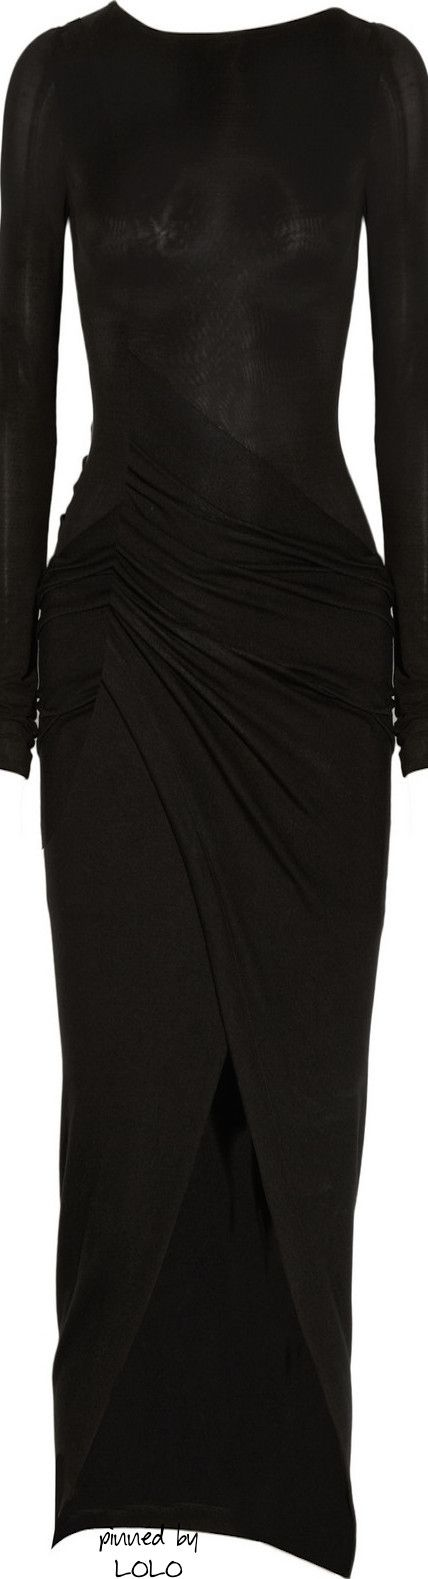 Donna Karan New York Black Draped Jersey Dress | The House of Beccaria~